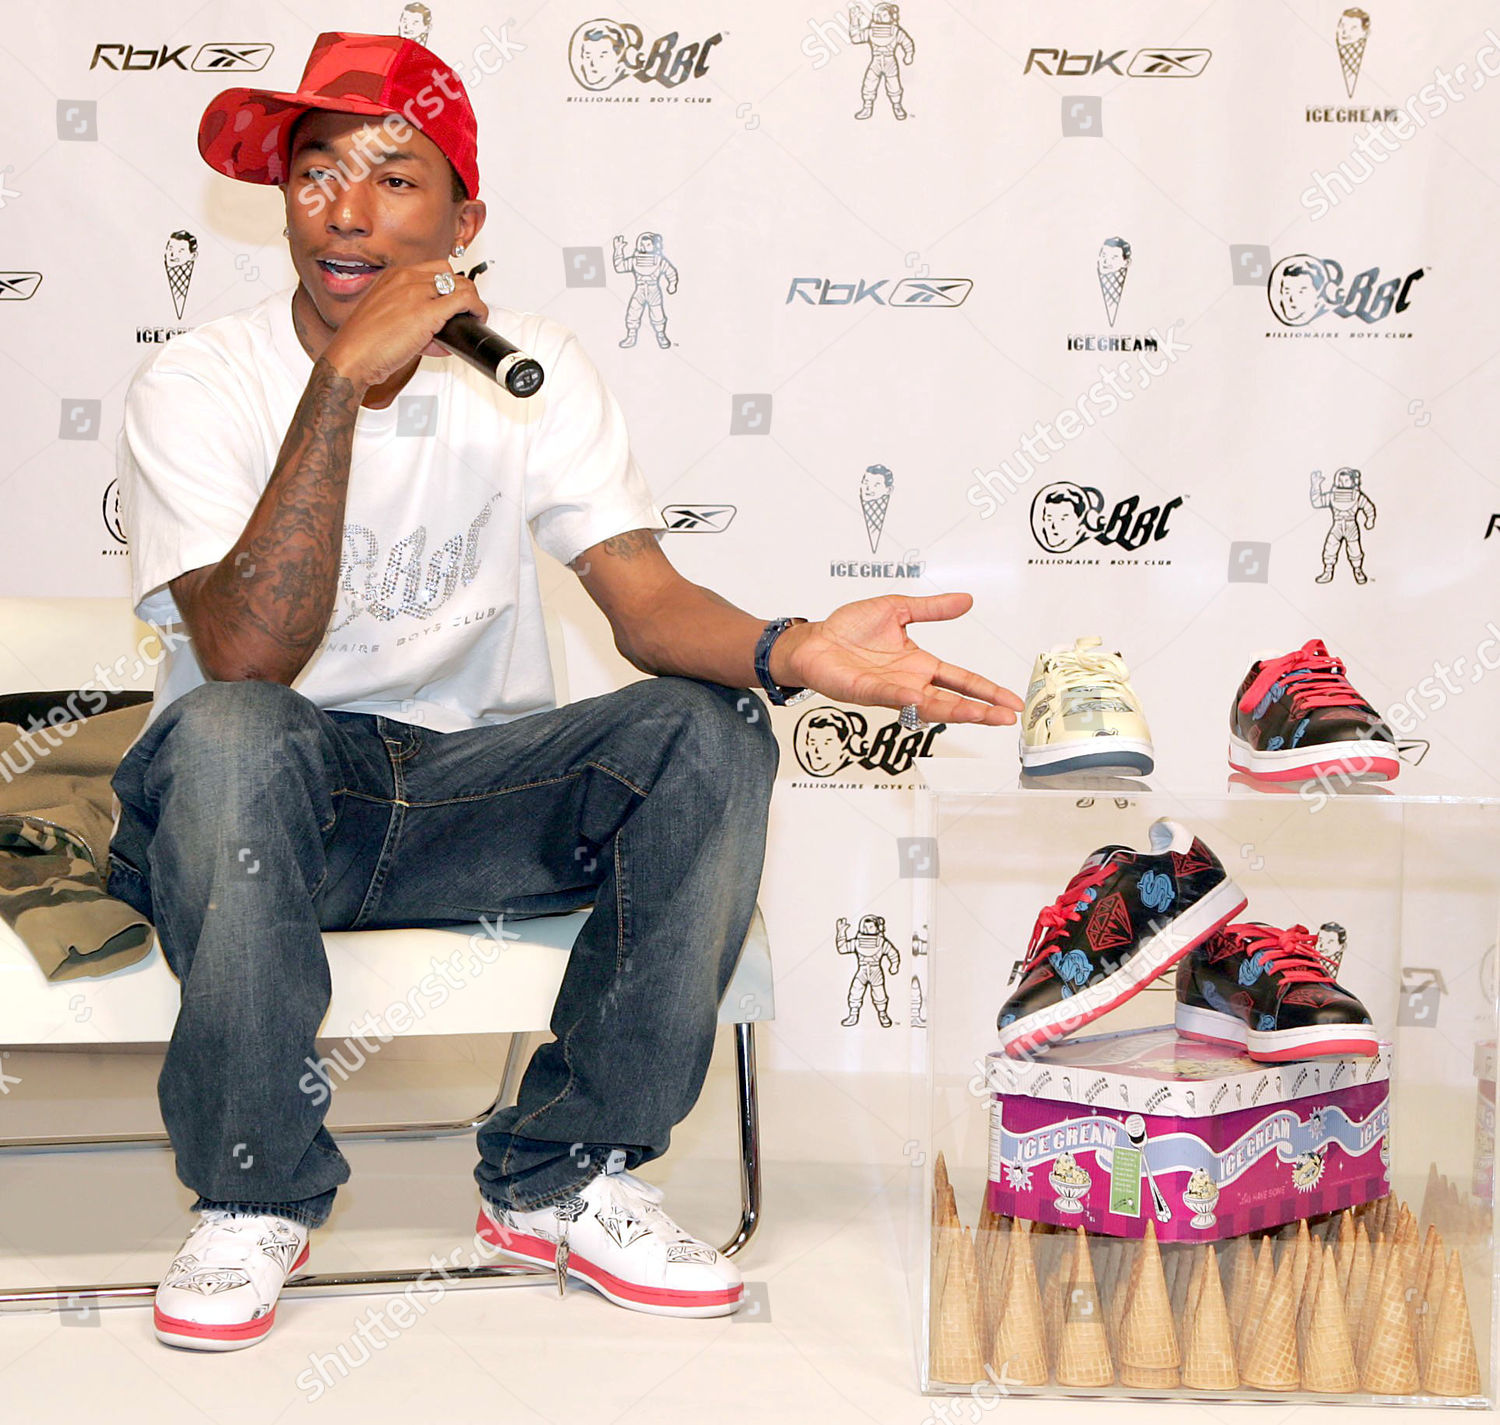 42fd5a2e6 REEBOK LAUNCH OF PHARRELL WILLIAMS ICE CREAM FOOTWEAR AND BILLIONAIRE BOYS  CLUB CLOTHING RANGE, NEW YORK, AMERICA Stock Image by Dave Allocca for  editorial ...